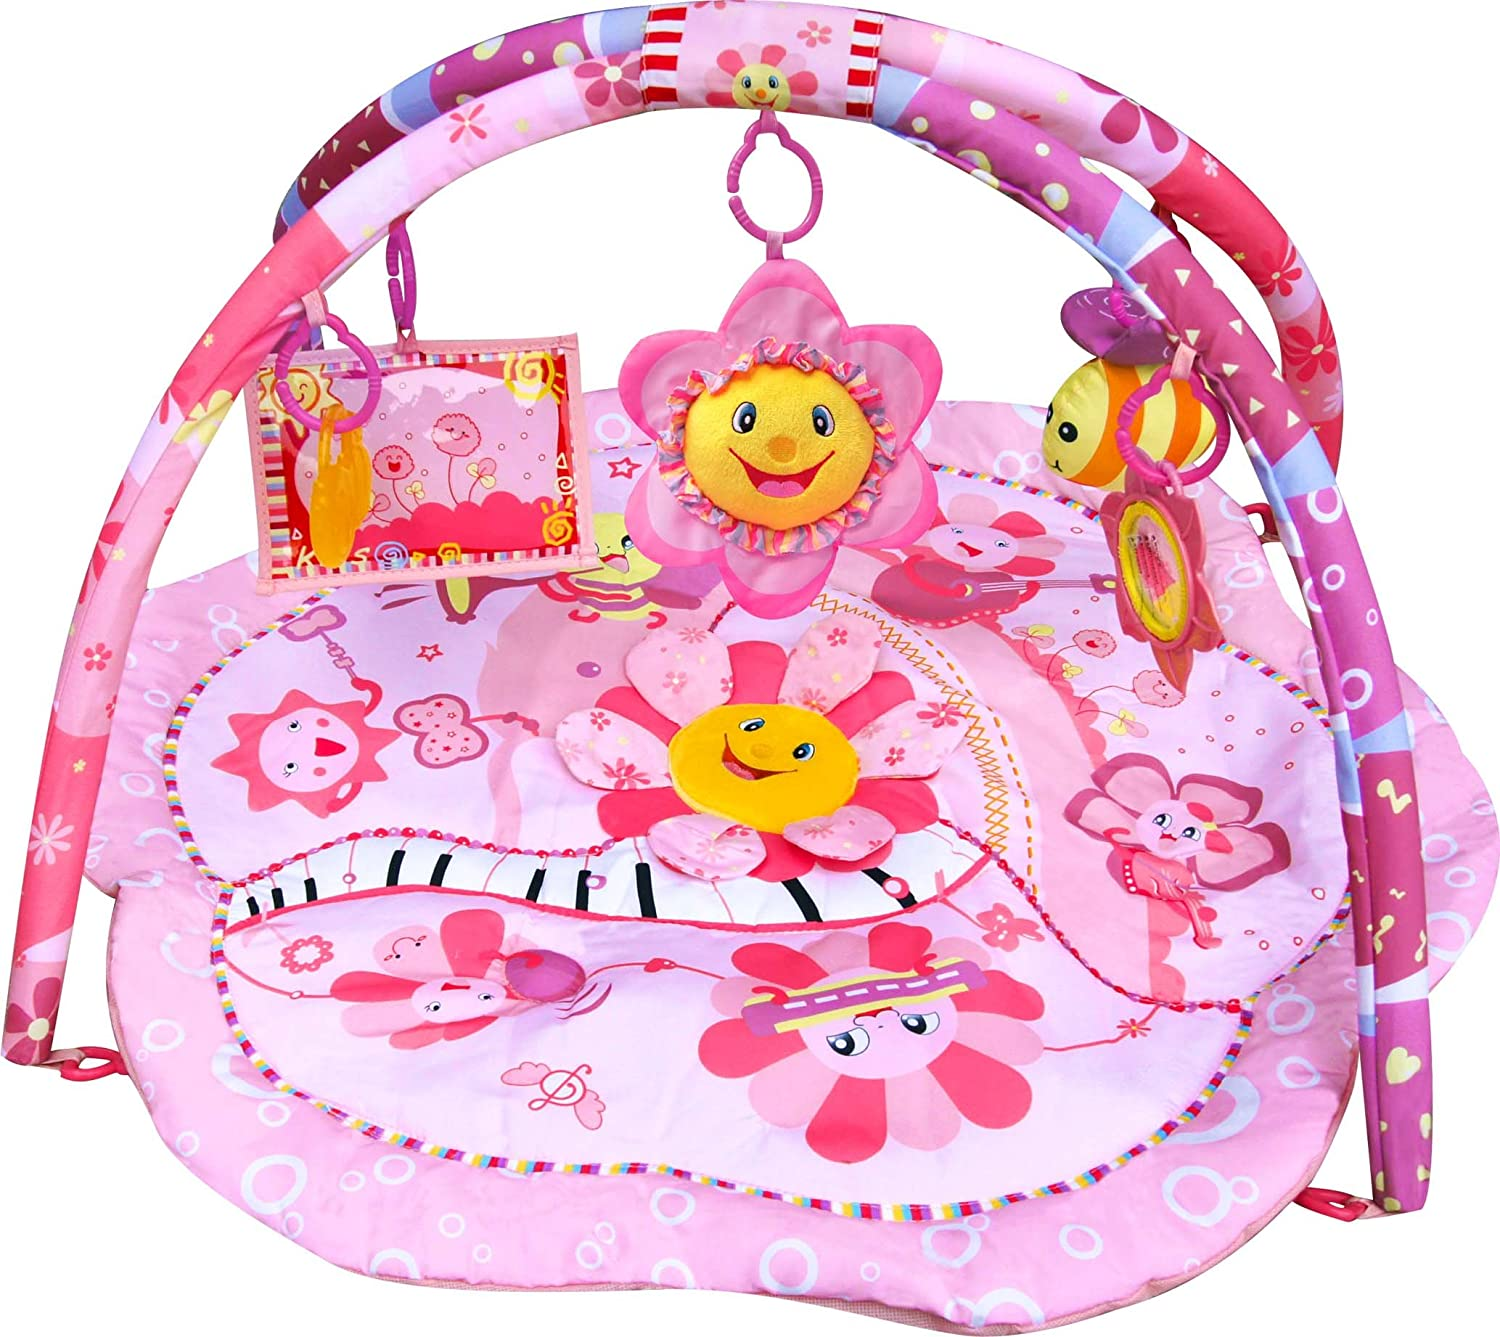 baby kick infant gym crawl floor musical activity mat rainforest bedding toys butterfly grasp play floors